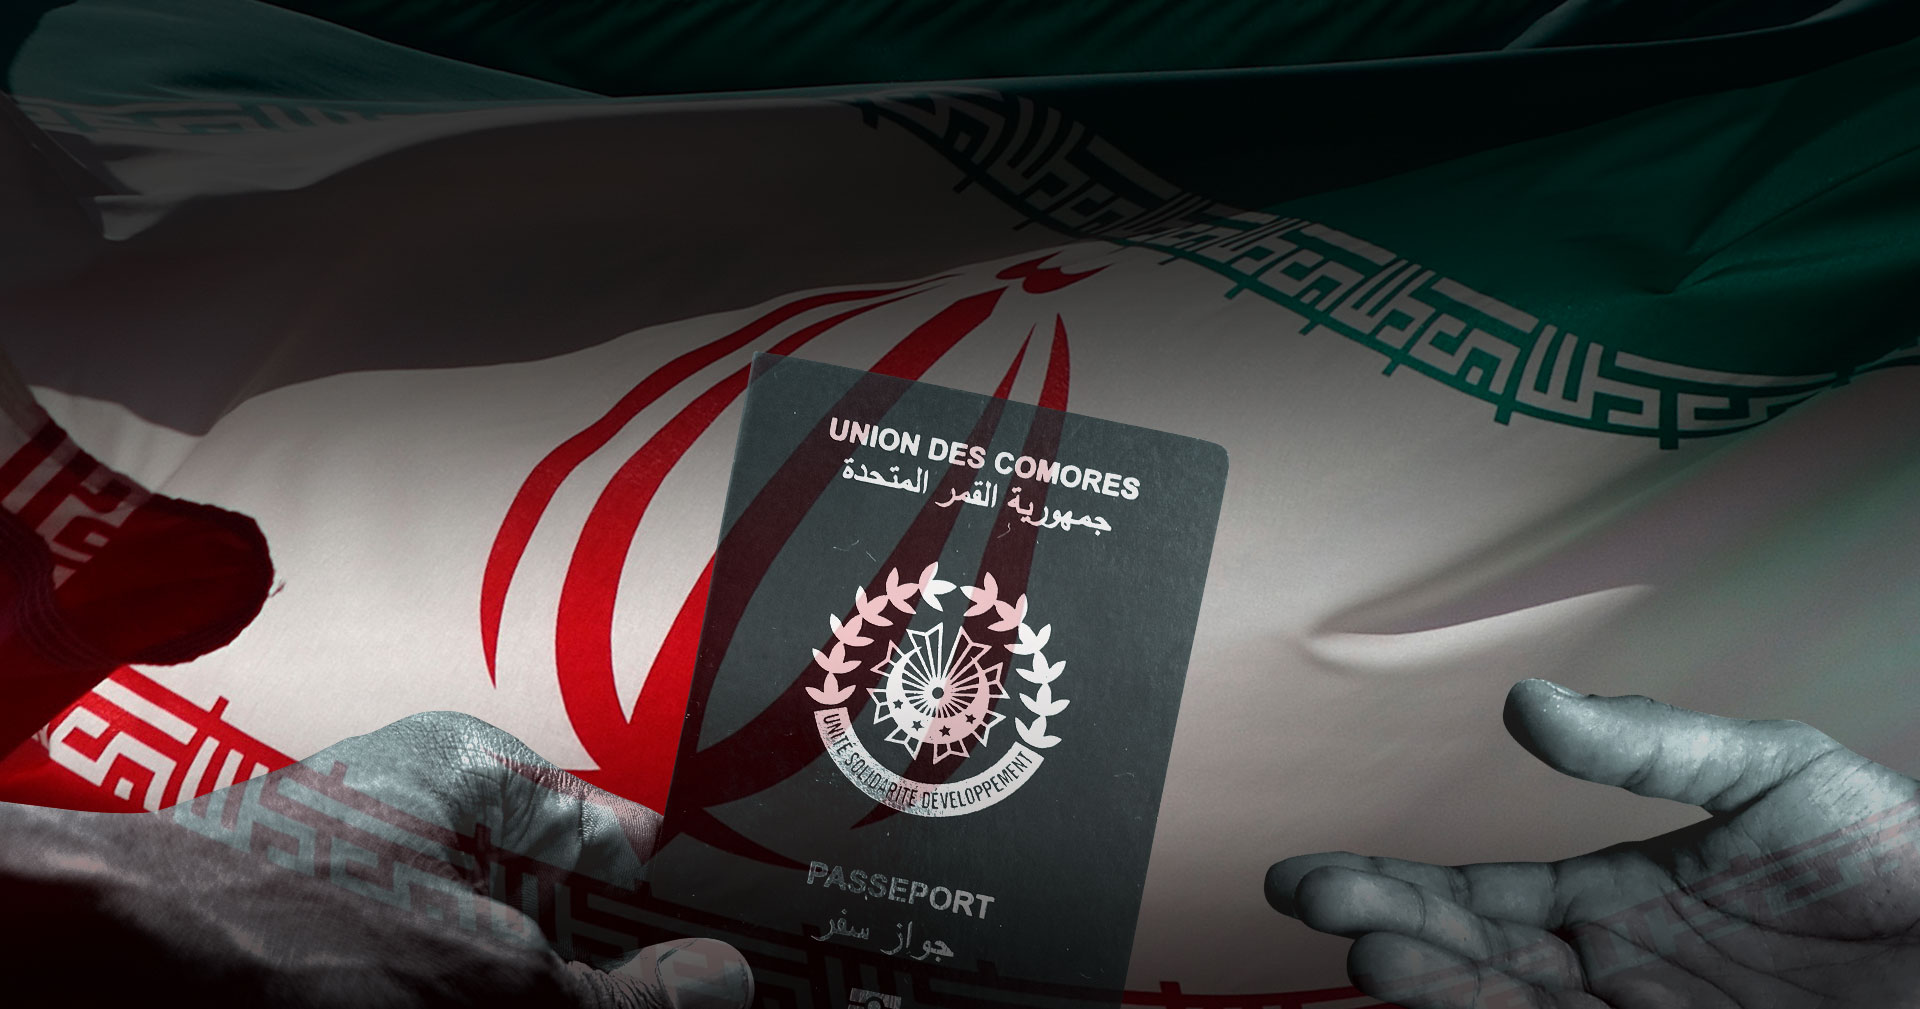 As sanctions bit, Iranian executives bought African passports